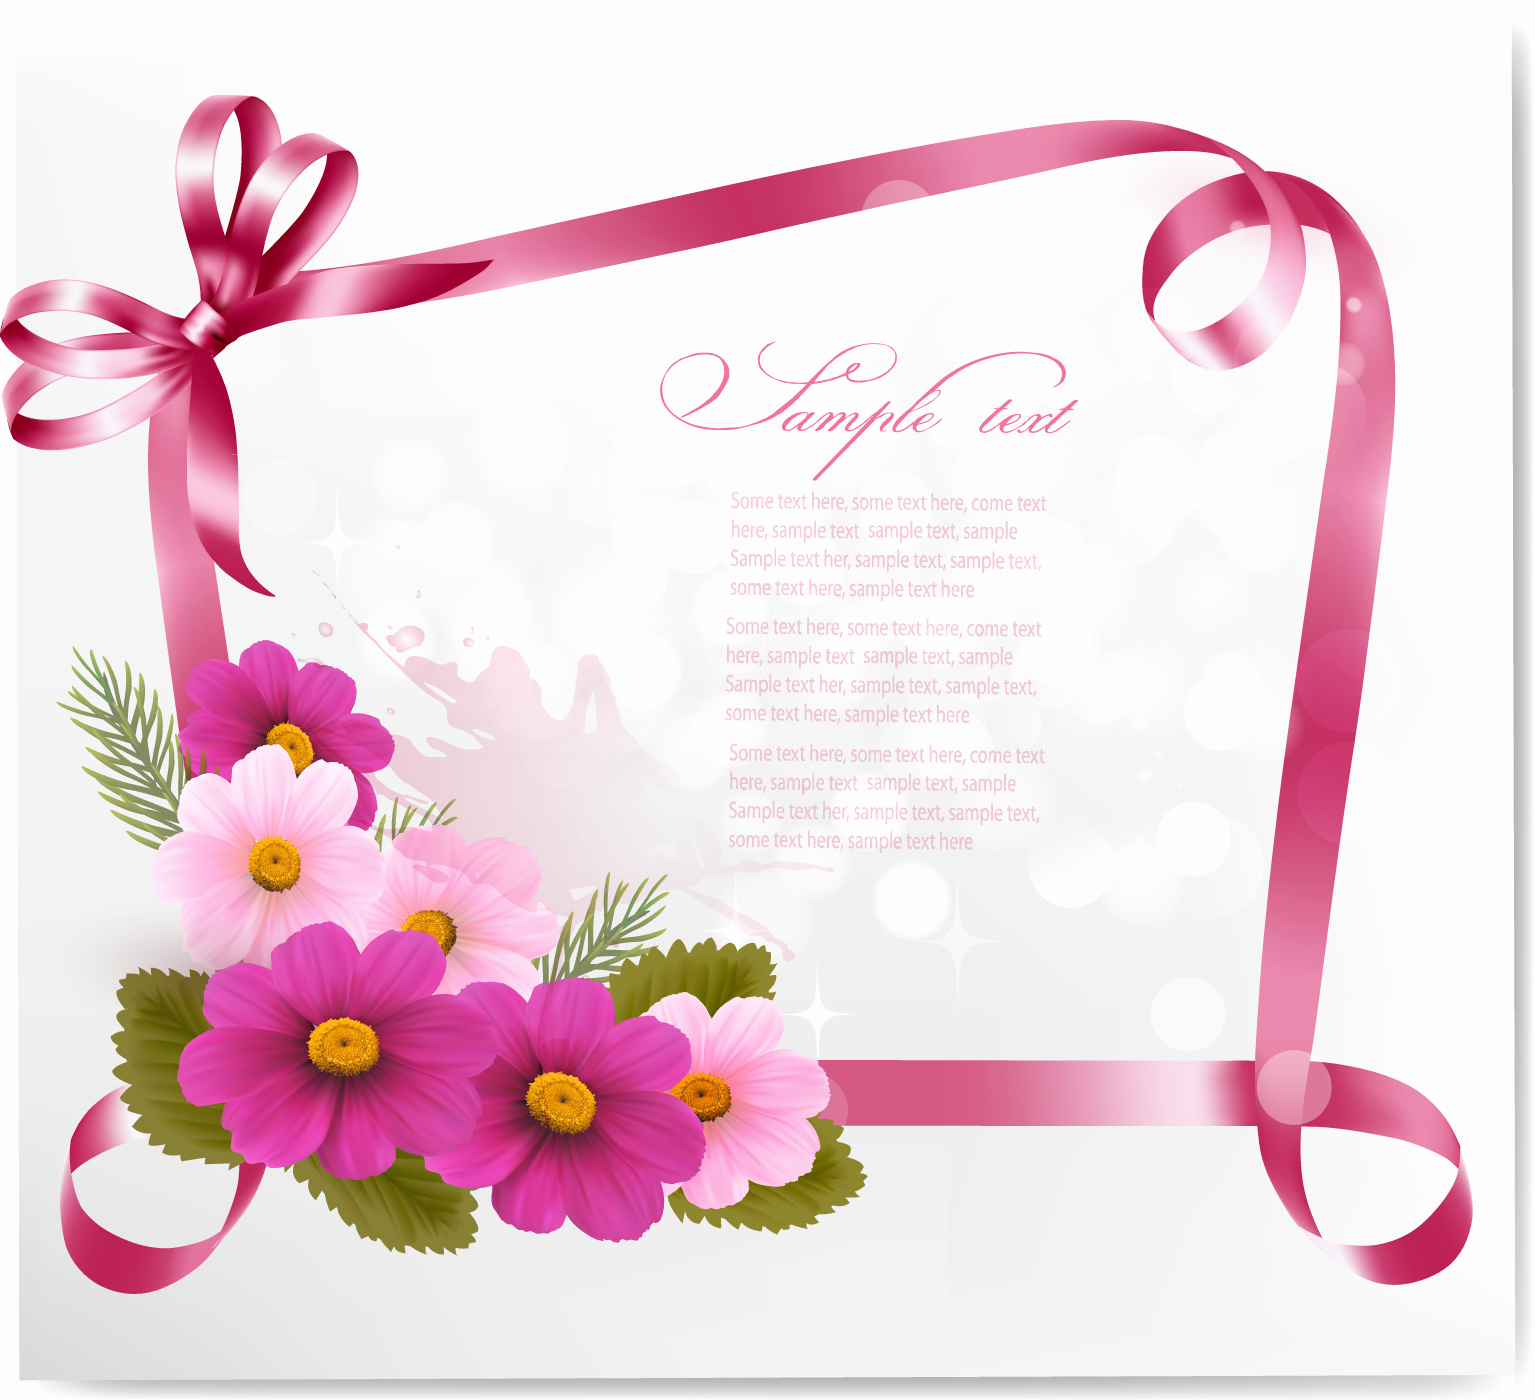 Free Greeting Card Templates New 14 Greeting Card Templates Excel Pdf formats